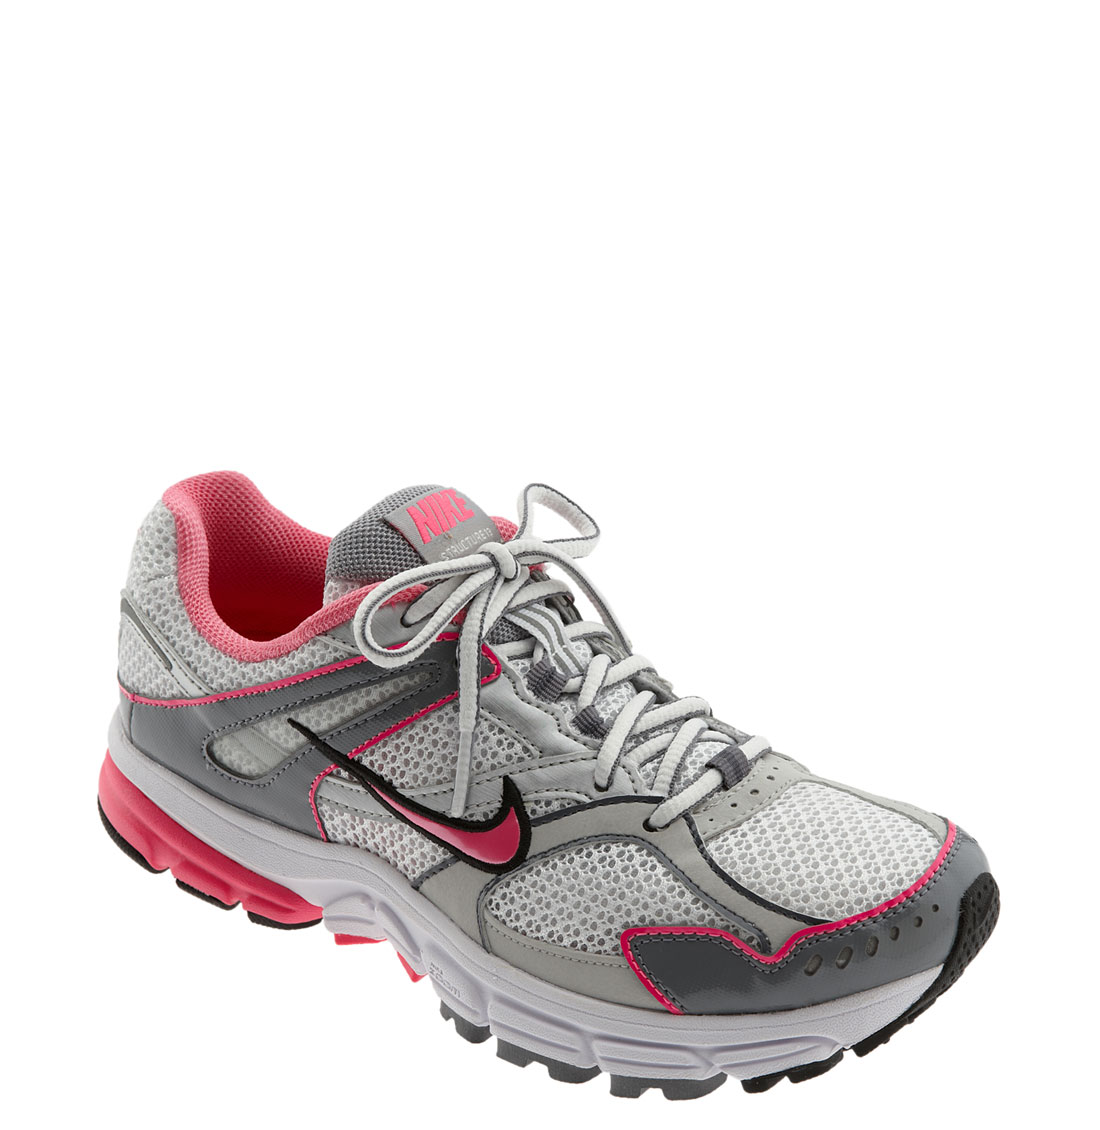 nike zoom structure triax 13 running shoe in pink